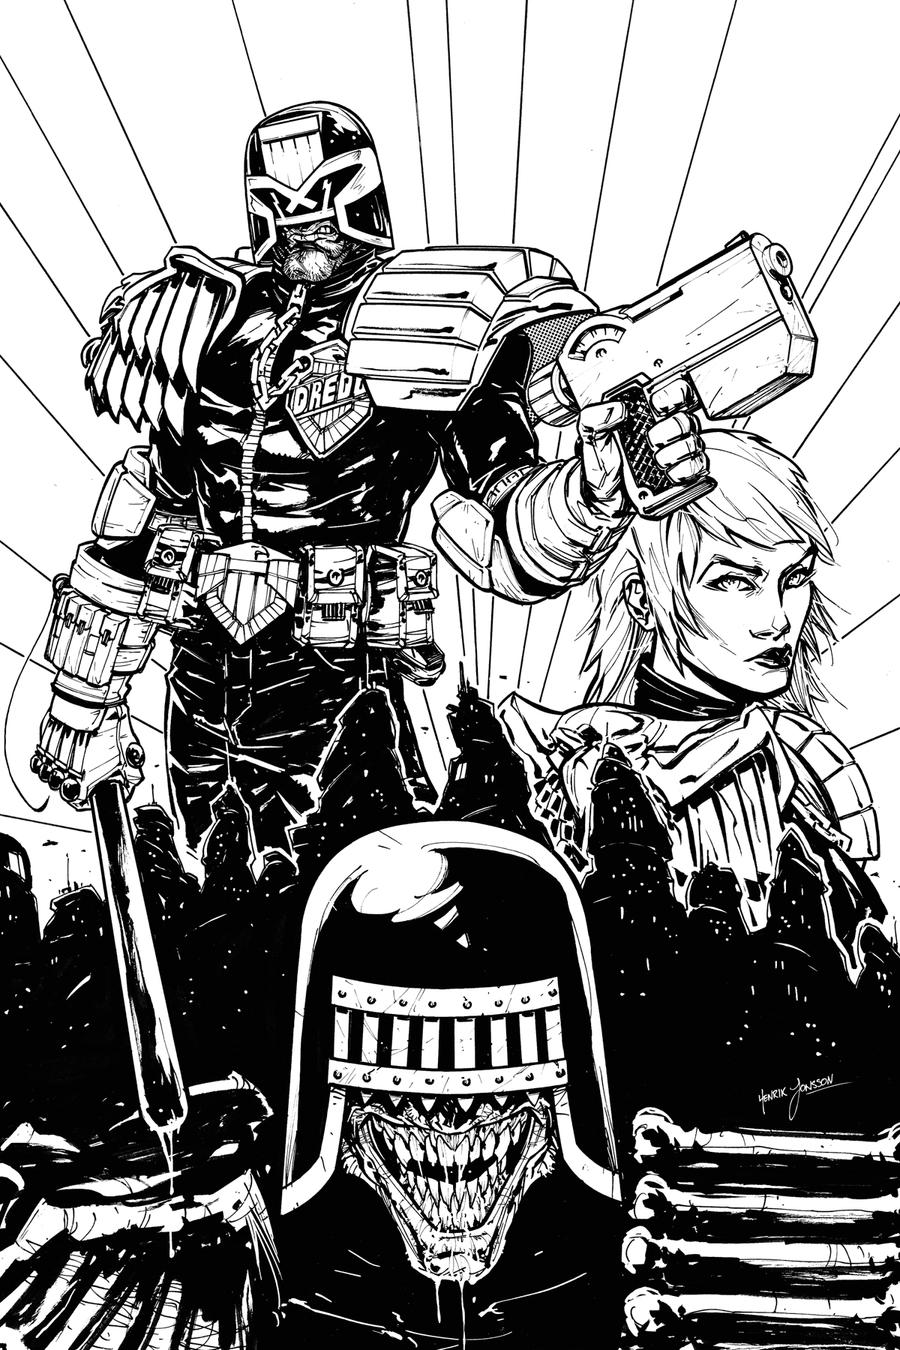 Dredd Vs. Death by HenrikJonsson